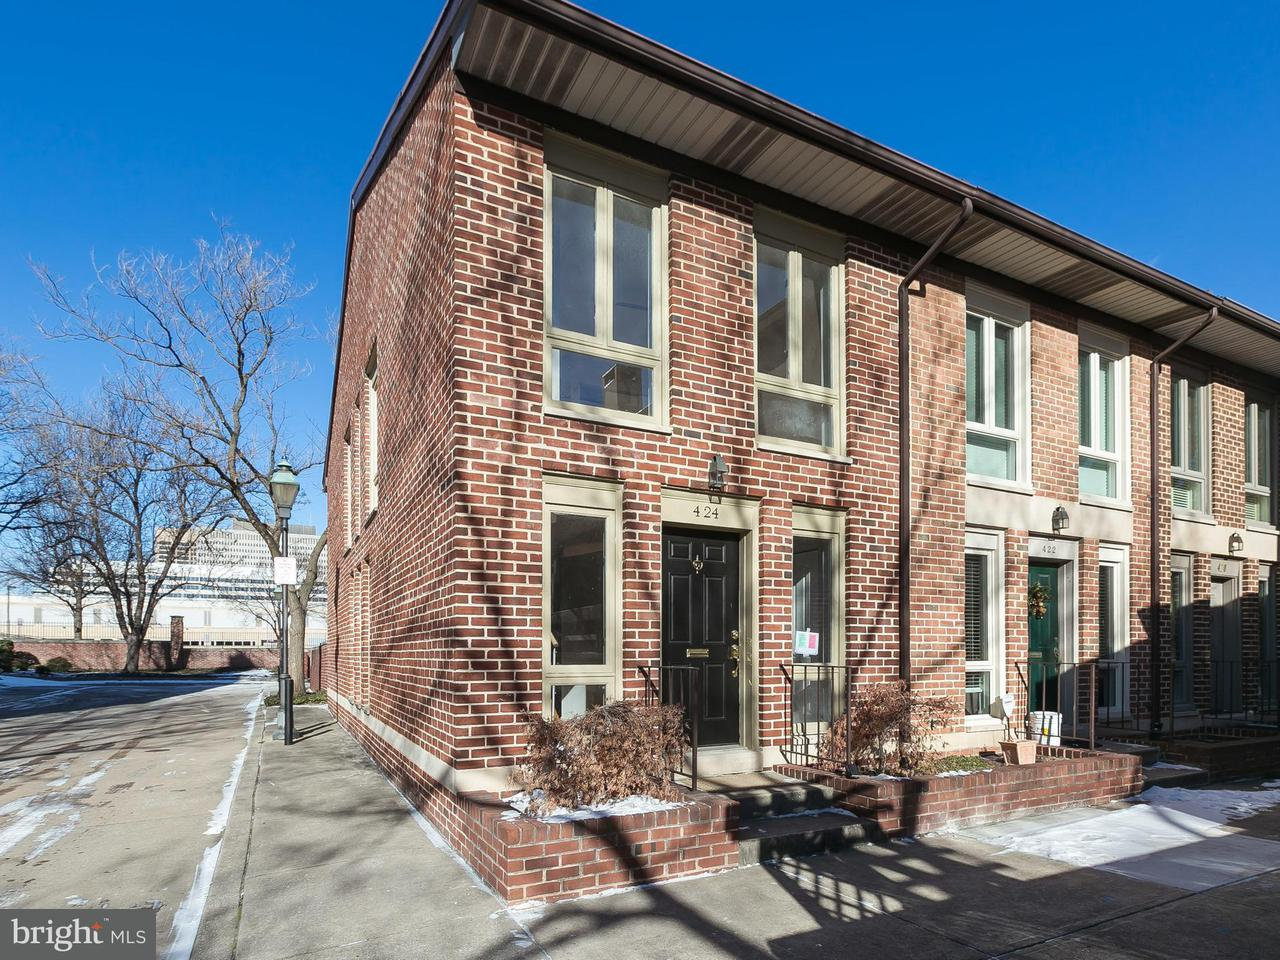 Single Family for Sale at 424 Hanover St Baltimore, Maryland 21201 United States